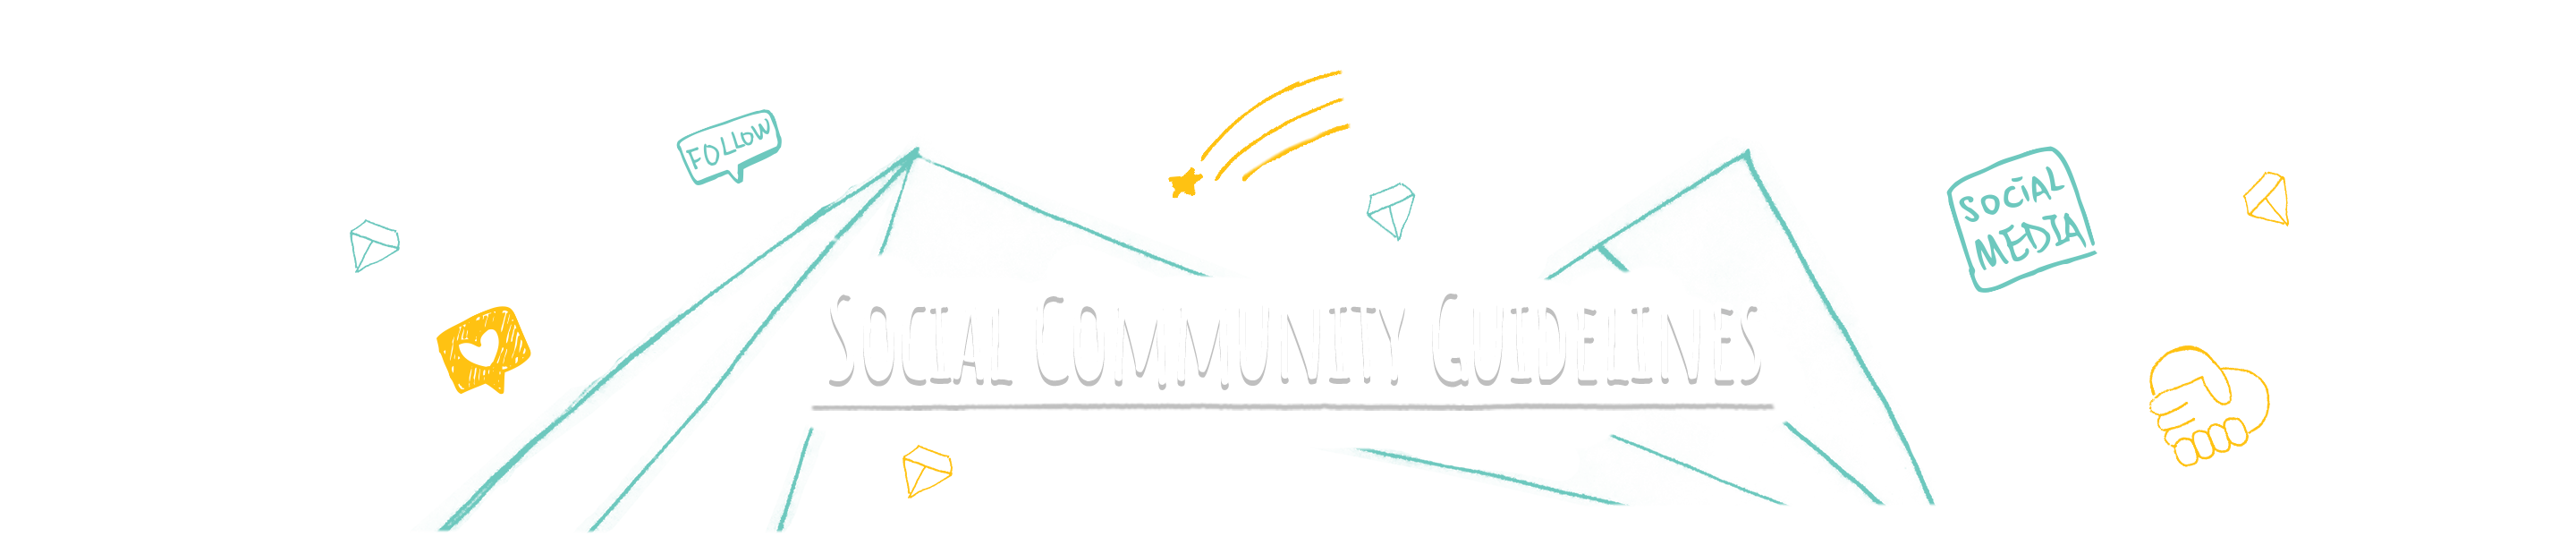 Social Community Guidelines